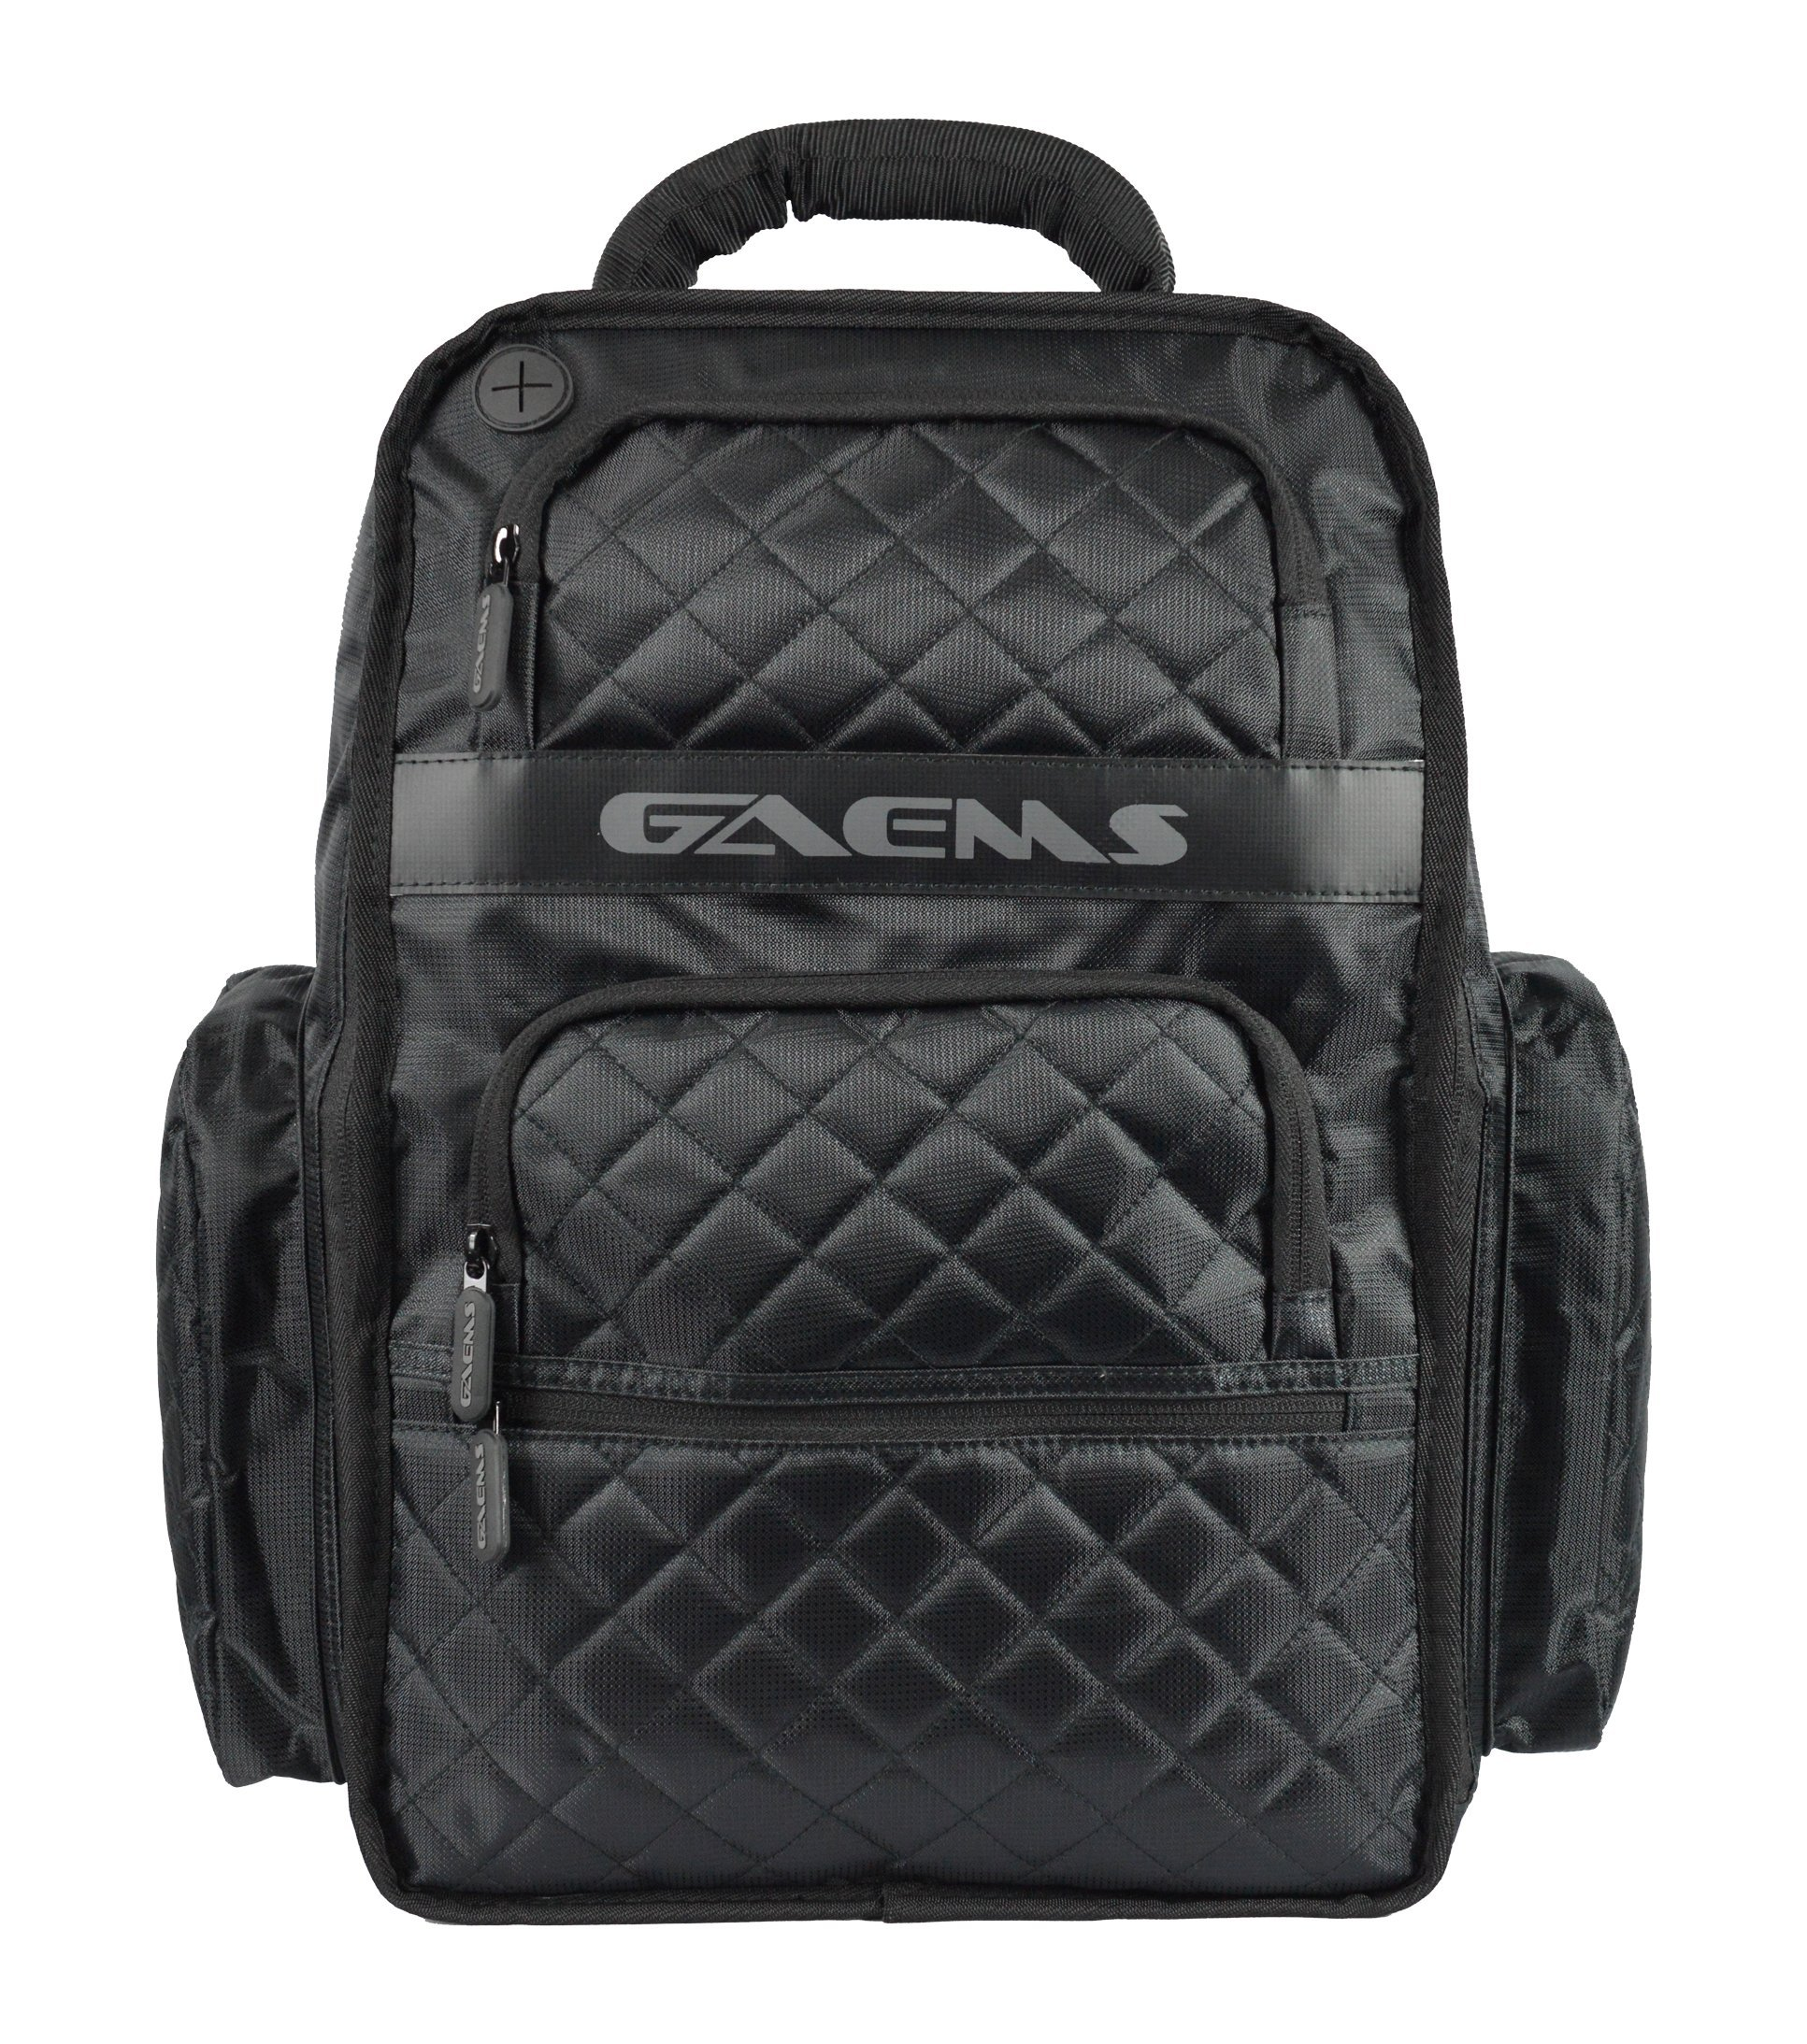 GAEMS Universal M155 Backpack Pro - Compatible with PlayStation 4, XBOX One, XBOX One S, PS3, XBOX 360  And  Other Electronic Items